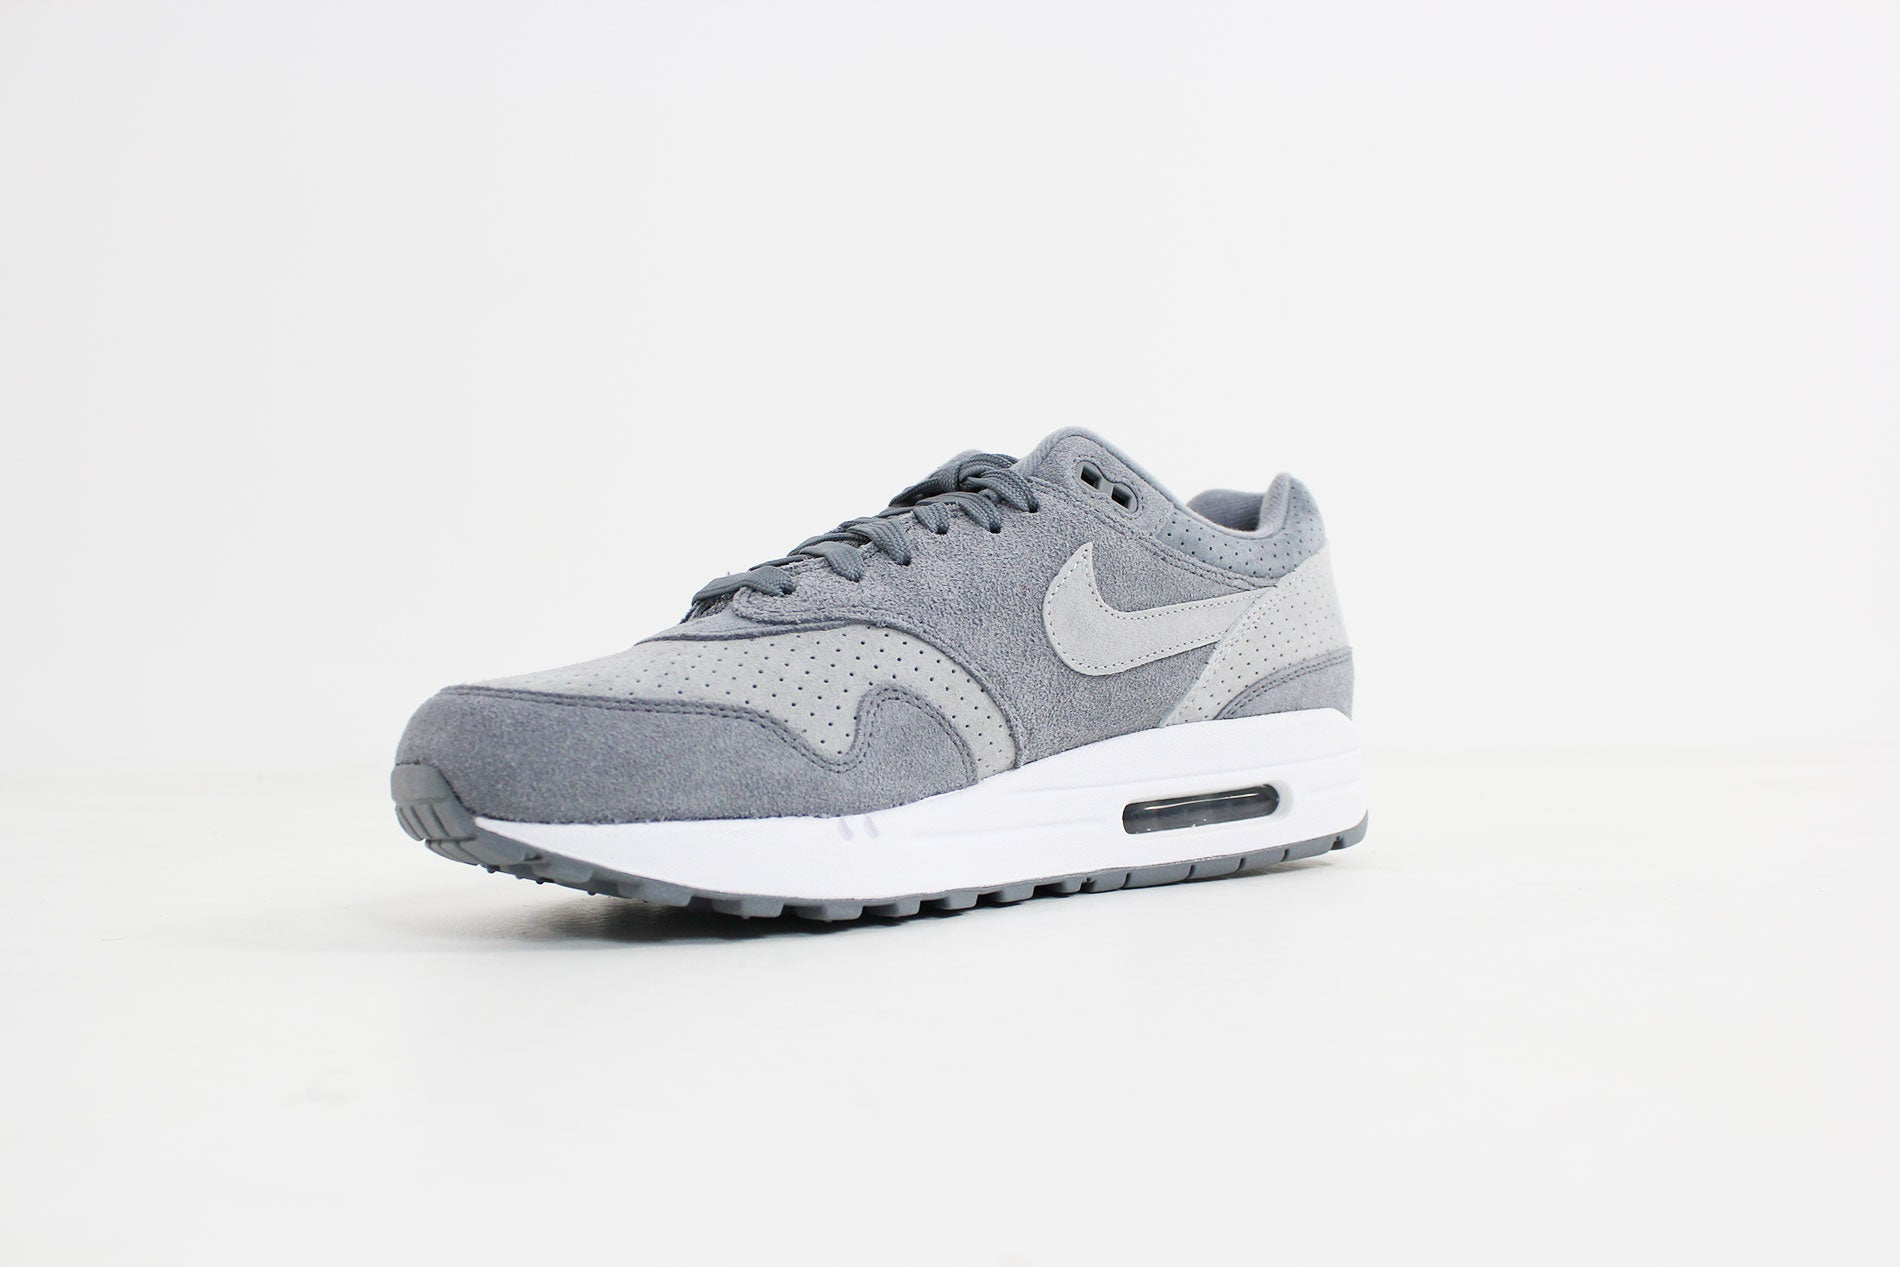 sports shoes ad0e9 7306e Nike - Air Max 1 Premium (Cool Grey  Wolf Grey-White) 875844-005. 875844-005.  Sold Out ...